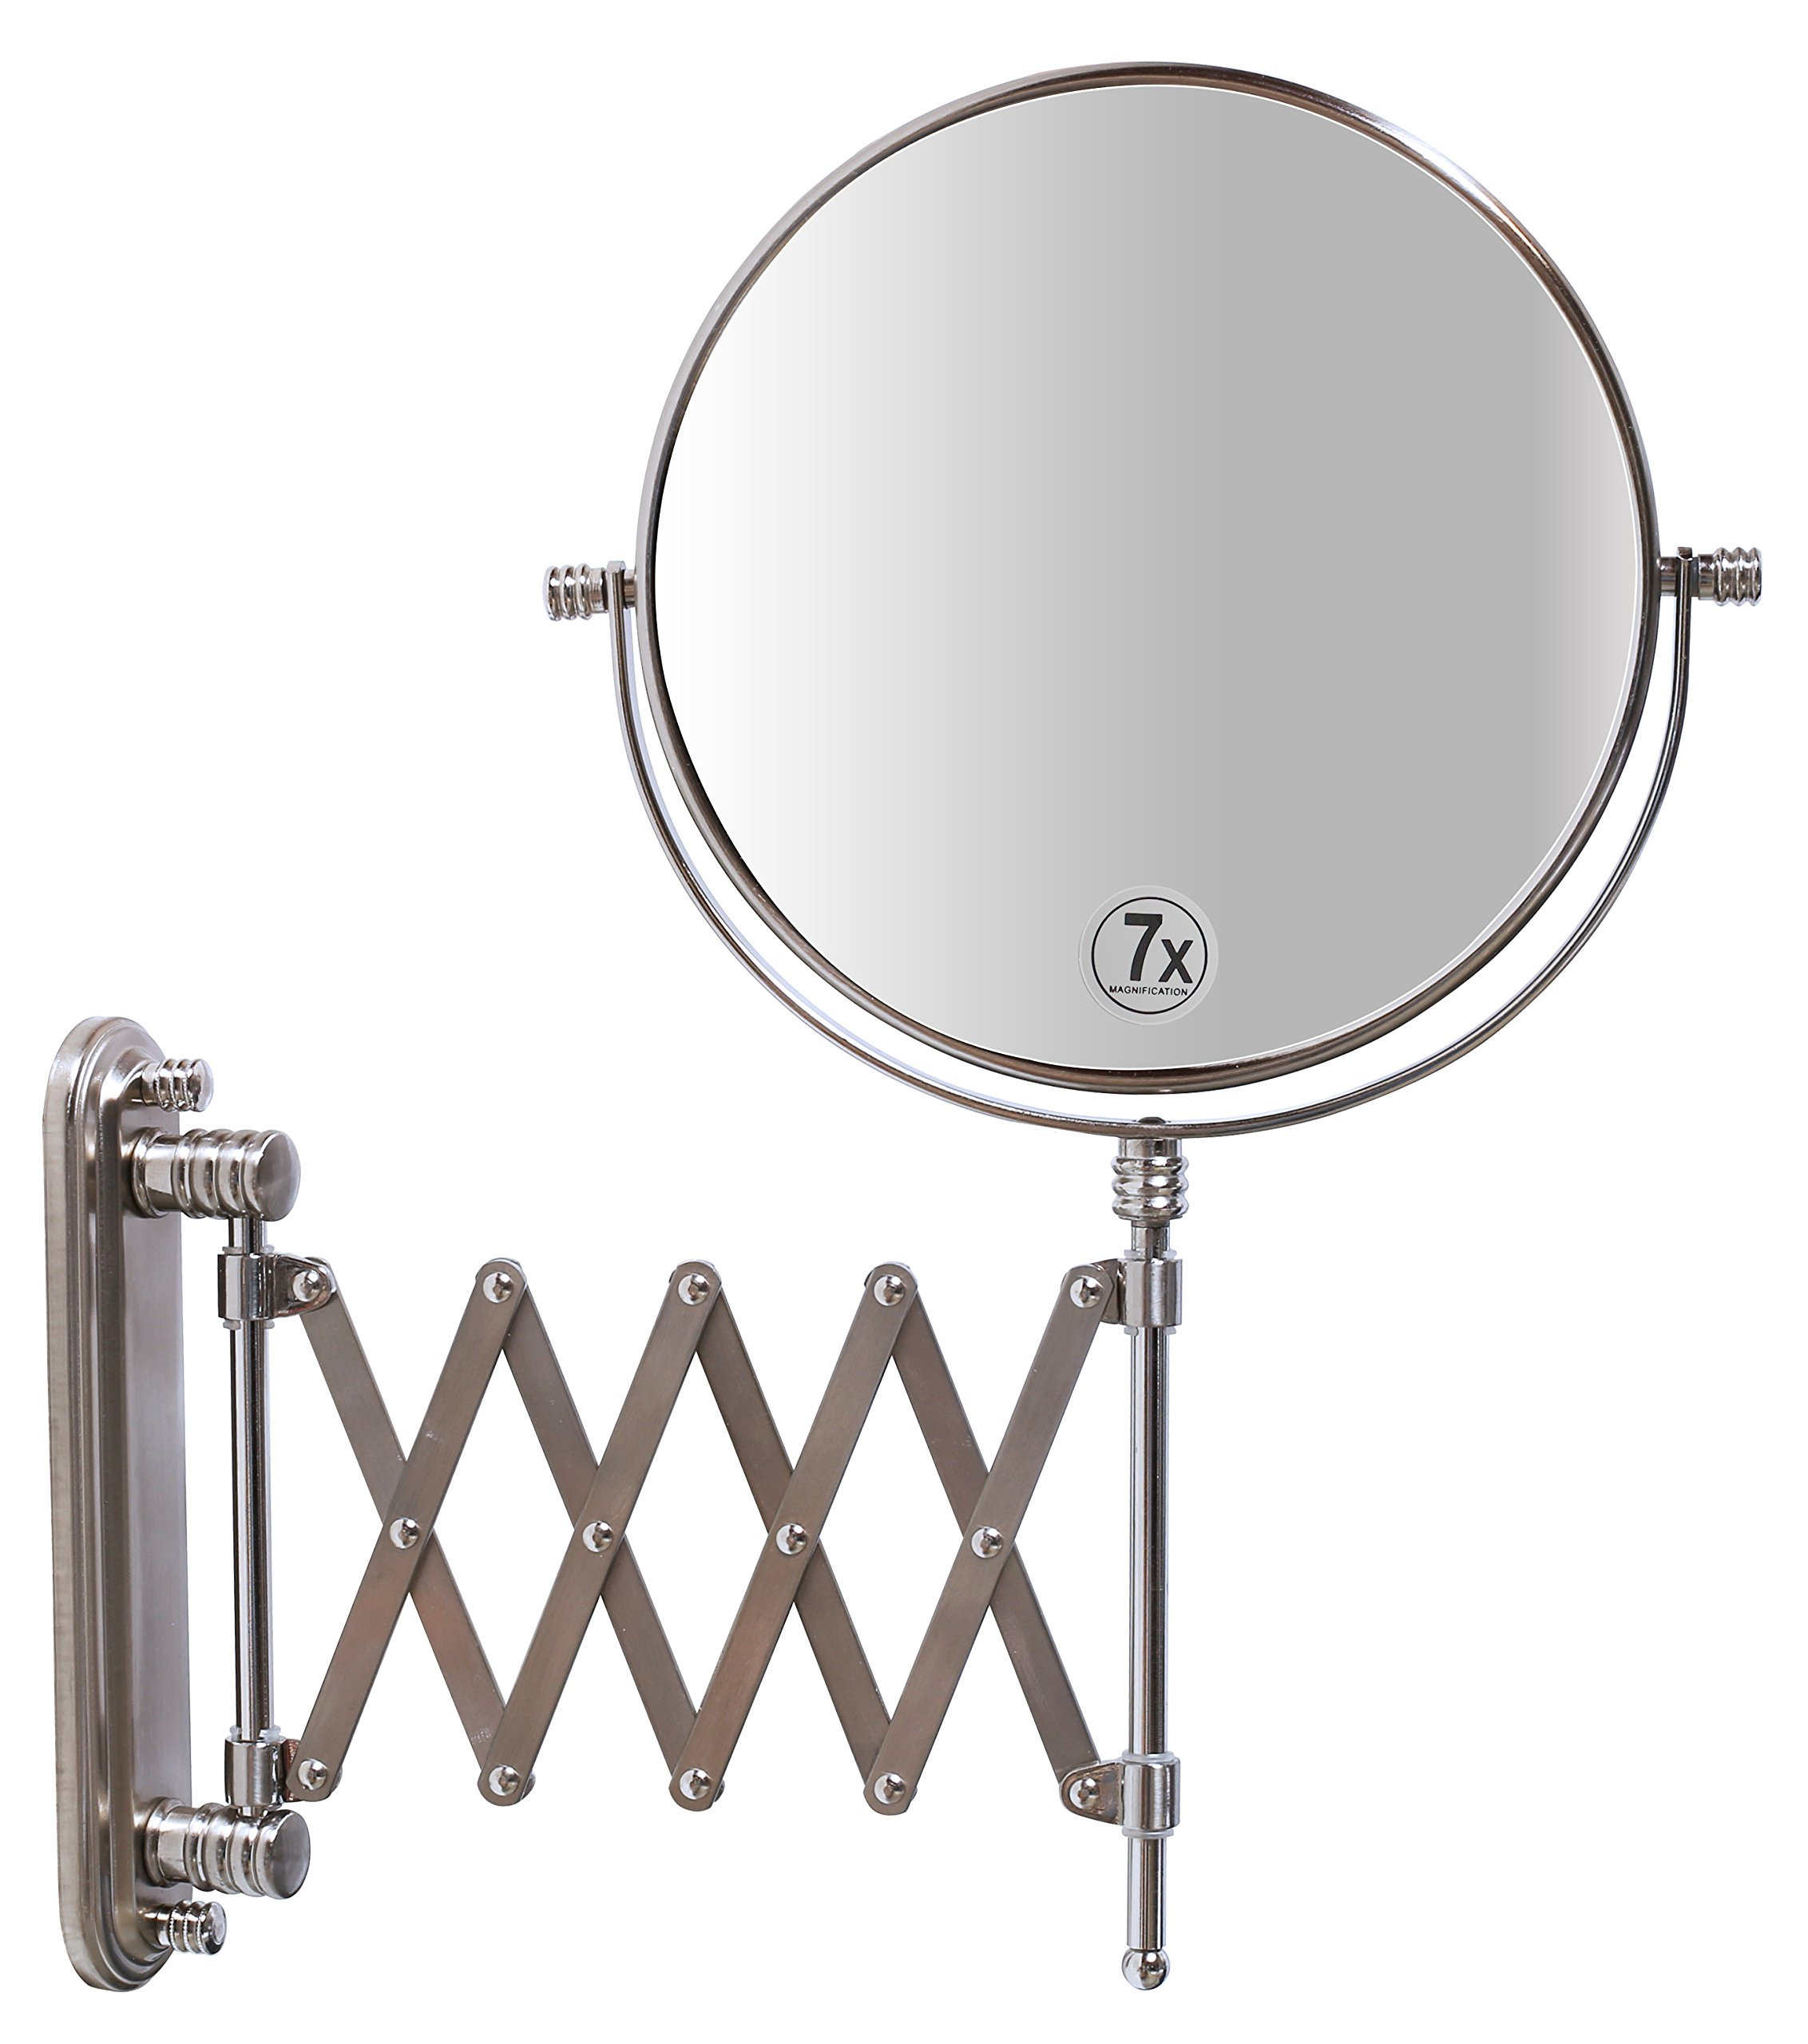 DecoBros 8-Inch Two-Sided Extension Wall Mount Mirror with 7x Magnification, 13.5-Inch Extension, Nickel by Deco Brothers